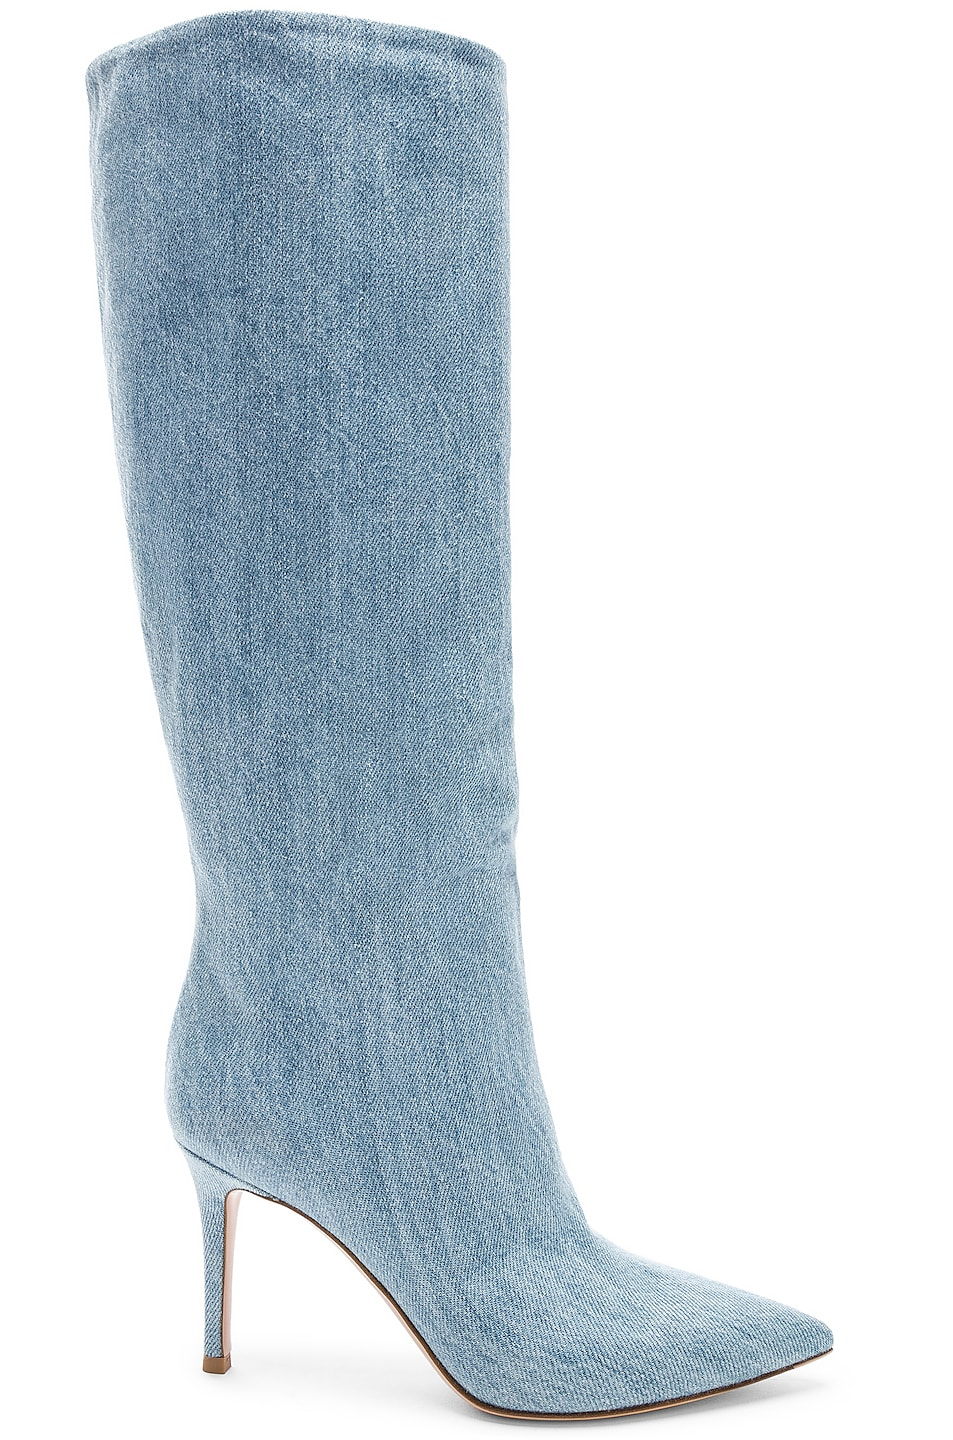 Image 1 of Gianvito Rossi Denim Boots in Stonewash